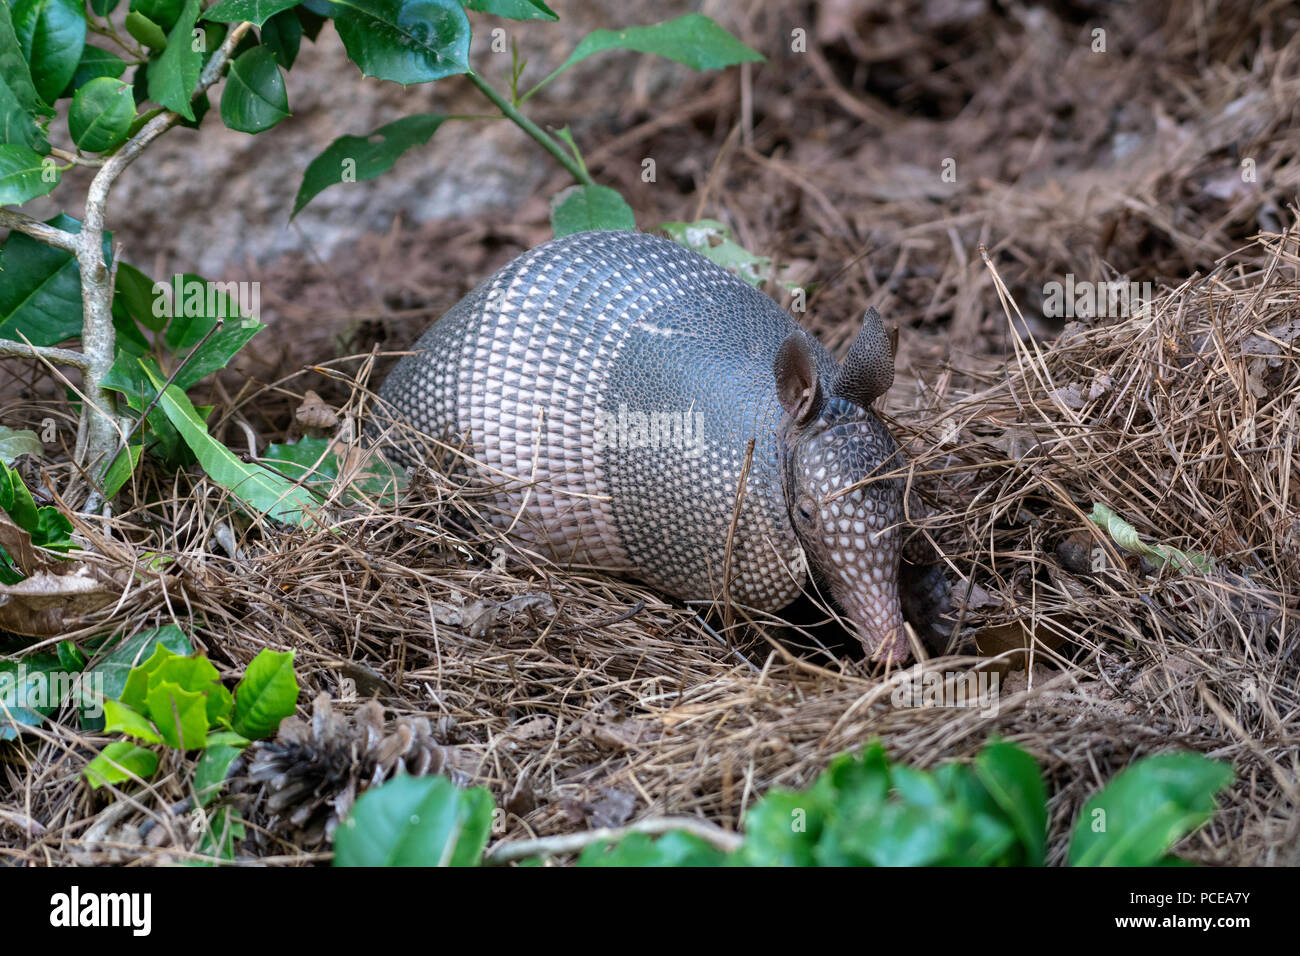 An armadillo, Dasypus novemcinctus, roots in the ground under a pine tree in northwest Louisiana. - Stock Image